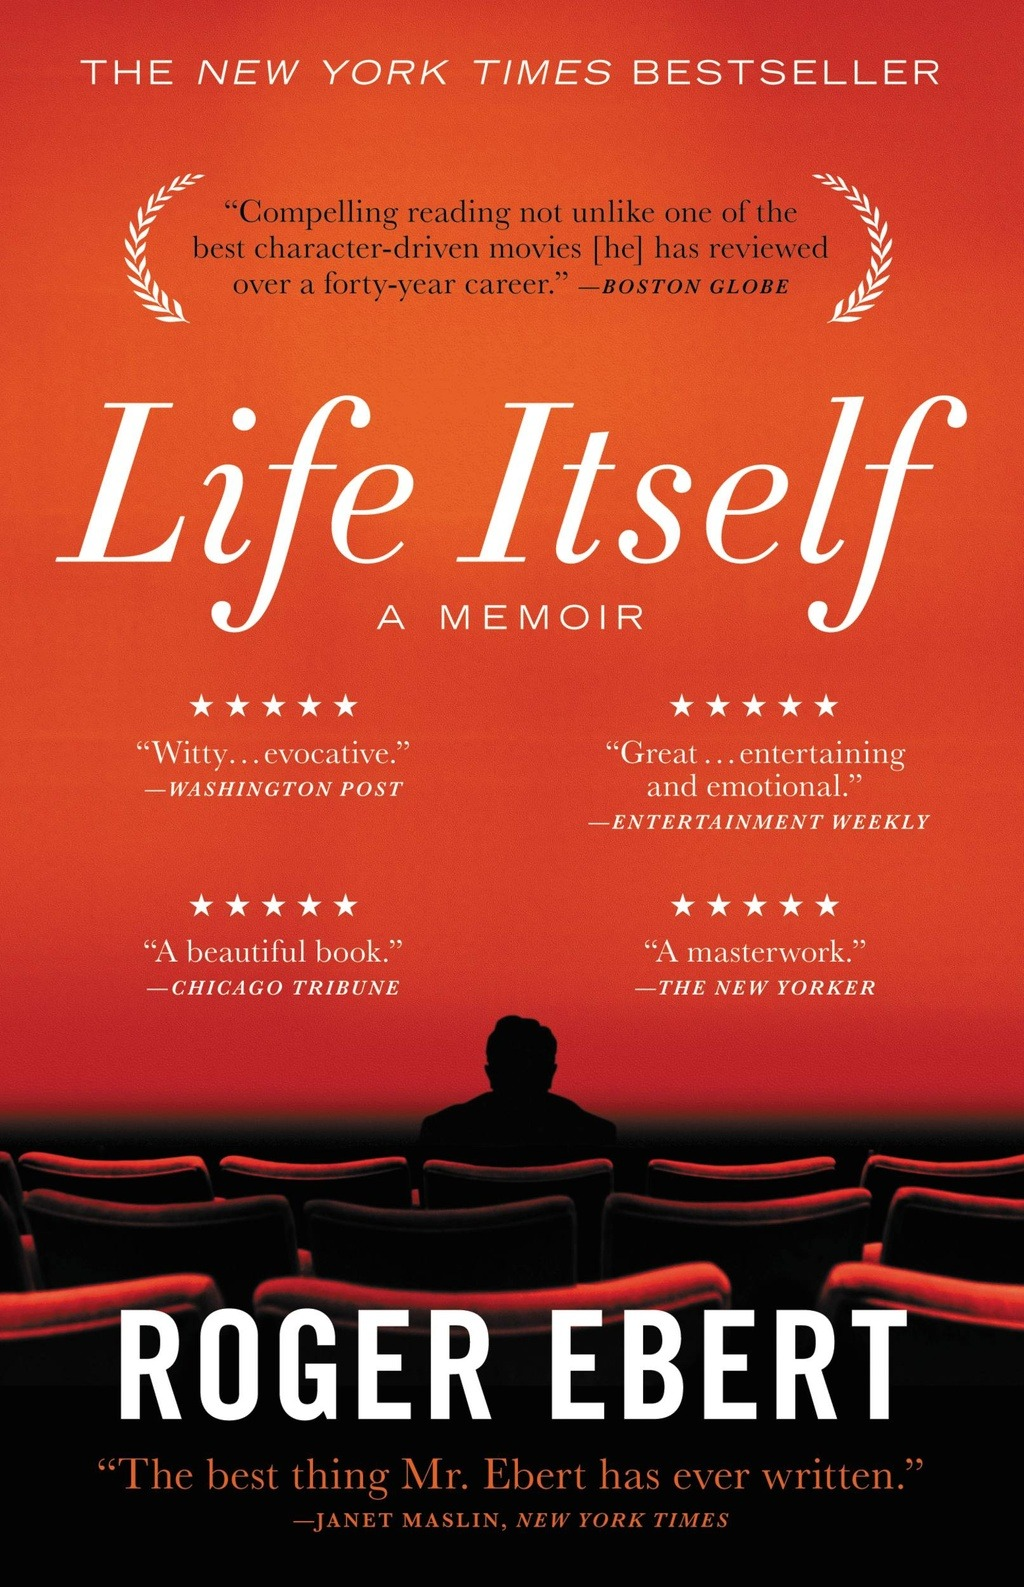 "A note from Mitch Hoffman, editor of LIFE ITSELF: Roger taught us all so much. First, he taught us about the movies. How to watch them, how to hate them, how to love them. Later, he taught us so much more. He lived out loud, and even when cancer took away his ability to speak, he didn't recede from public life: his voice became his writing, and he became even more prolific and influential, showing us at the same time how to confront illness and adversity with strength, elegance and grace. Publishing his memoir was a professional privilege for all of us. For those of us who were lucky enough to work with him directly, he was endlessly generous, and he approached the task of writing his memoir with constant joy. And he was unafraid to face his own mortality. As with anything else he wrote about, Roger said it best, and so I will leave the last word to him, quoted from the chapter in his memoir, Go Gently: ""I believe that if, at the end, according to our abilities, we have done something to make others a little happier, and something to make ourselves a little happier, that is about the best we can do. To make others less happy is a crime. To make ourselves unhappy is where all crime starts. We must try to contribute joy to the world. That is true no matter what our problems, our health, our circumstances. We must try. I didn't always know this and am happy I lived long enough to find it out."""